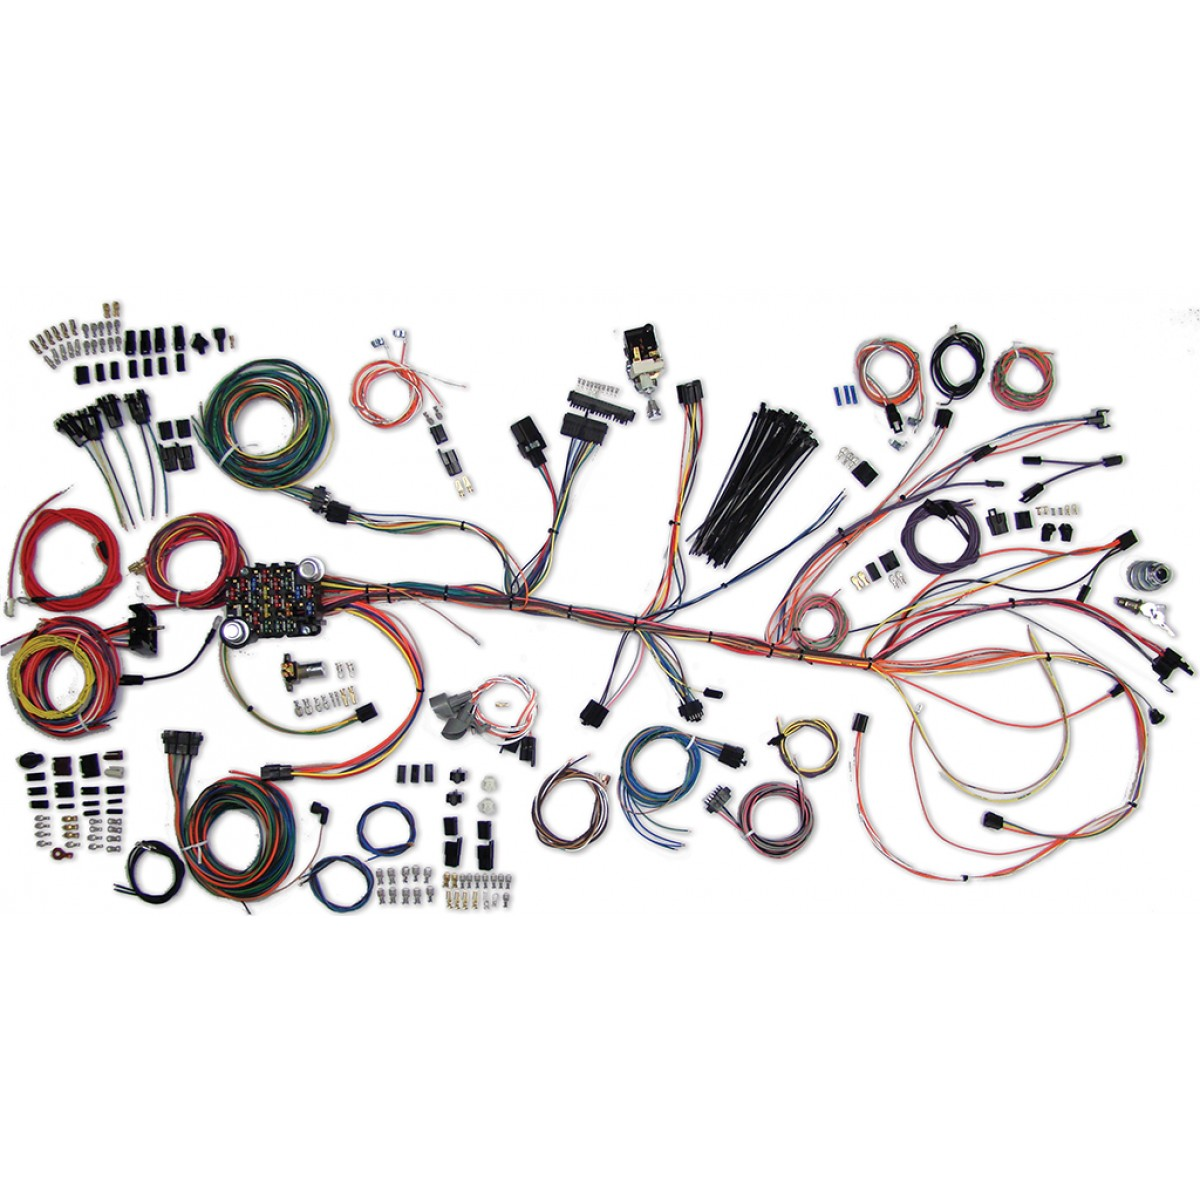 1964 1967 chevelle wiring harness kit chevelle wiring part rh code510 com 1967 chevelle engine wiring harness 67 chevelle dash wiring harness